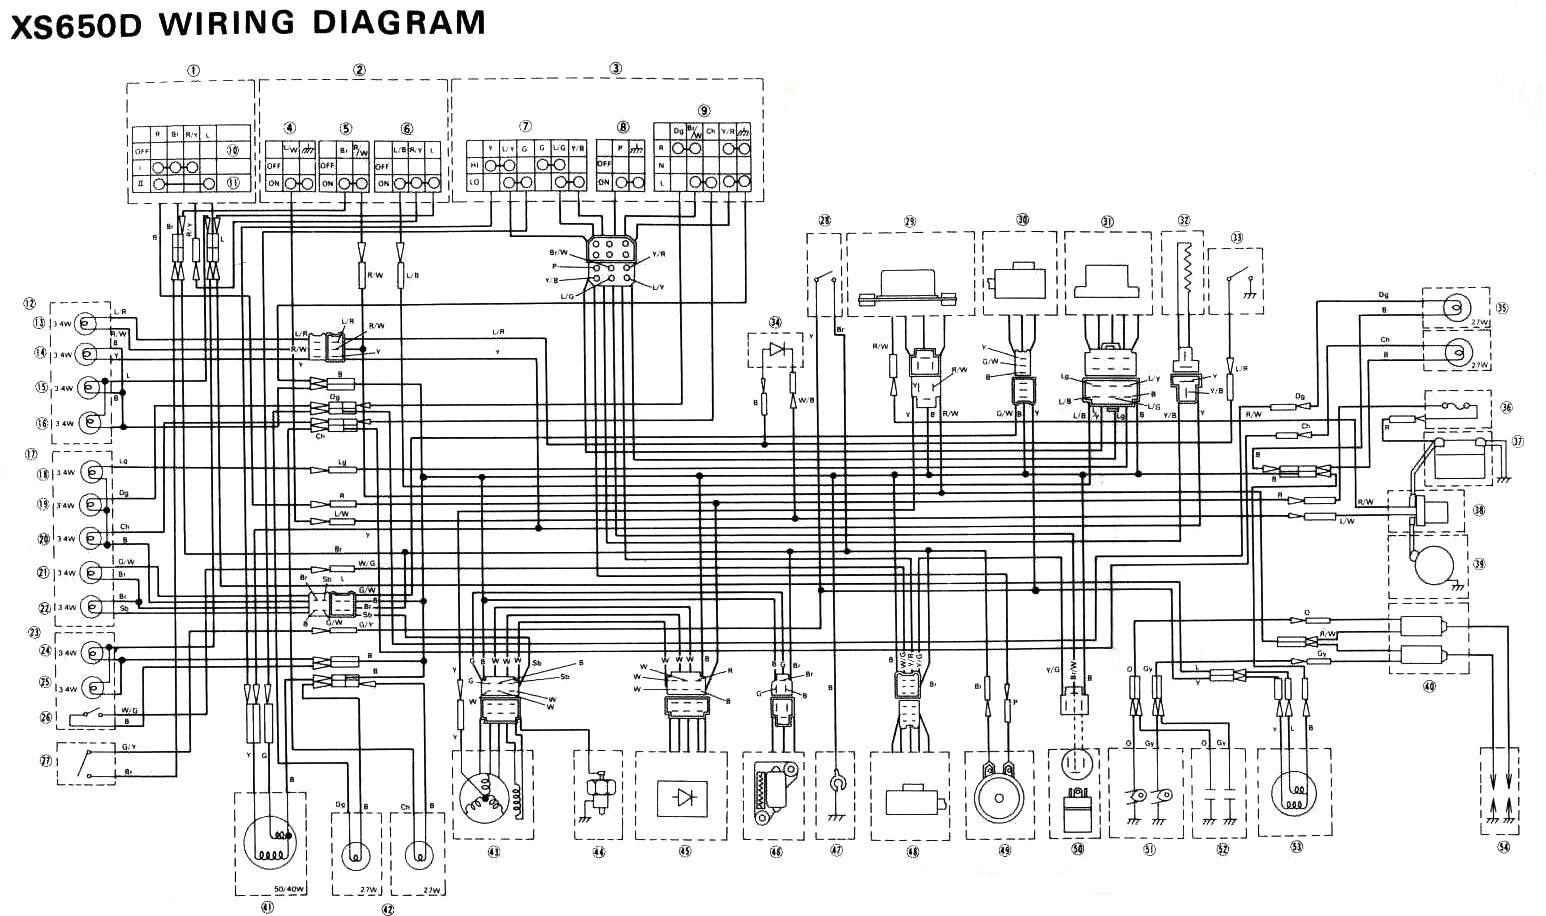 77XS650 wiring diagrams 1983 yamaha xs650 wiring diagram at bayanpartner.co